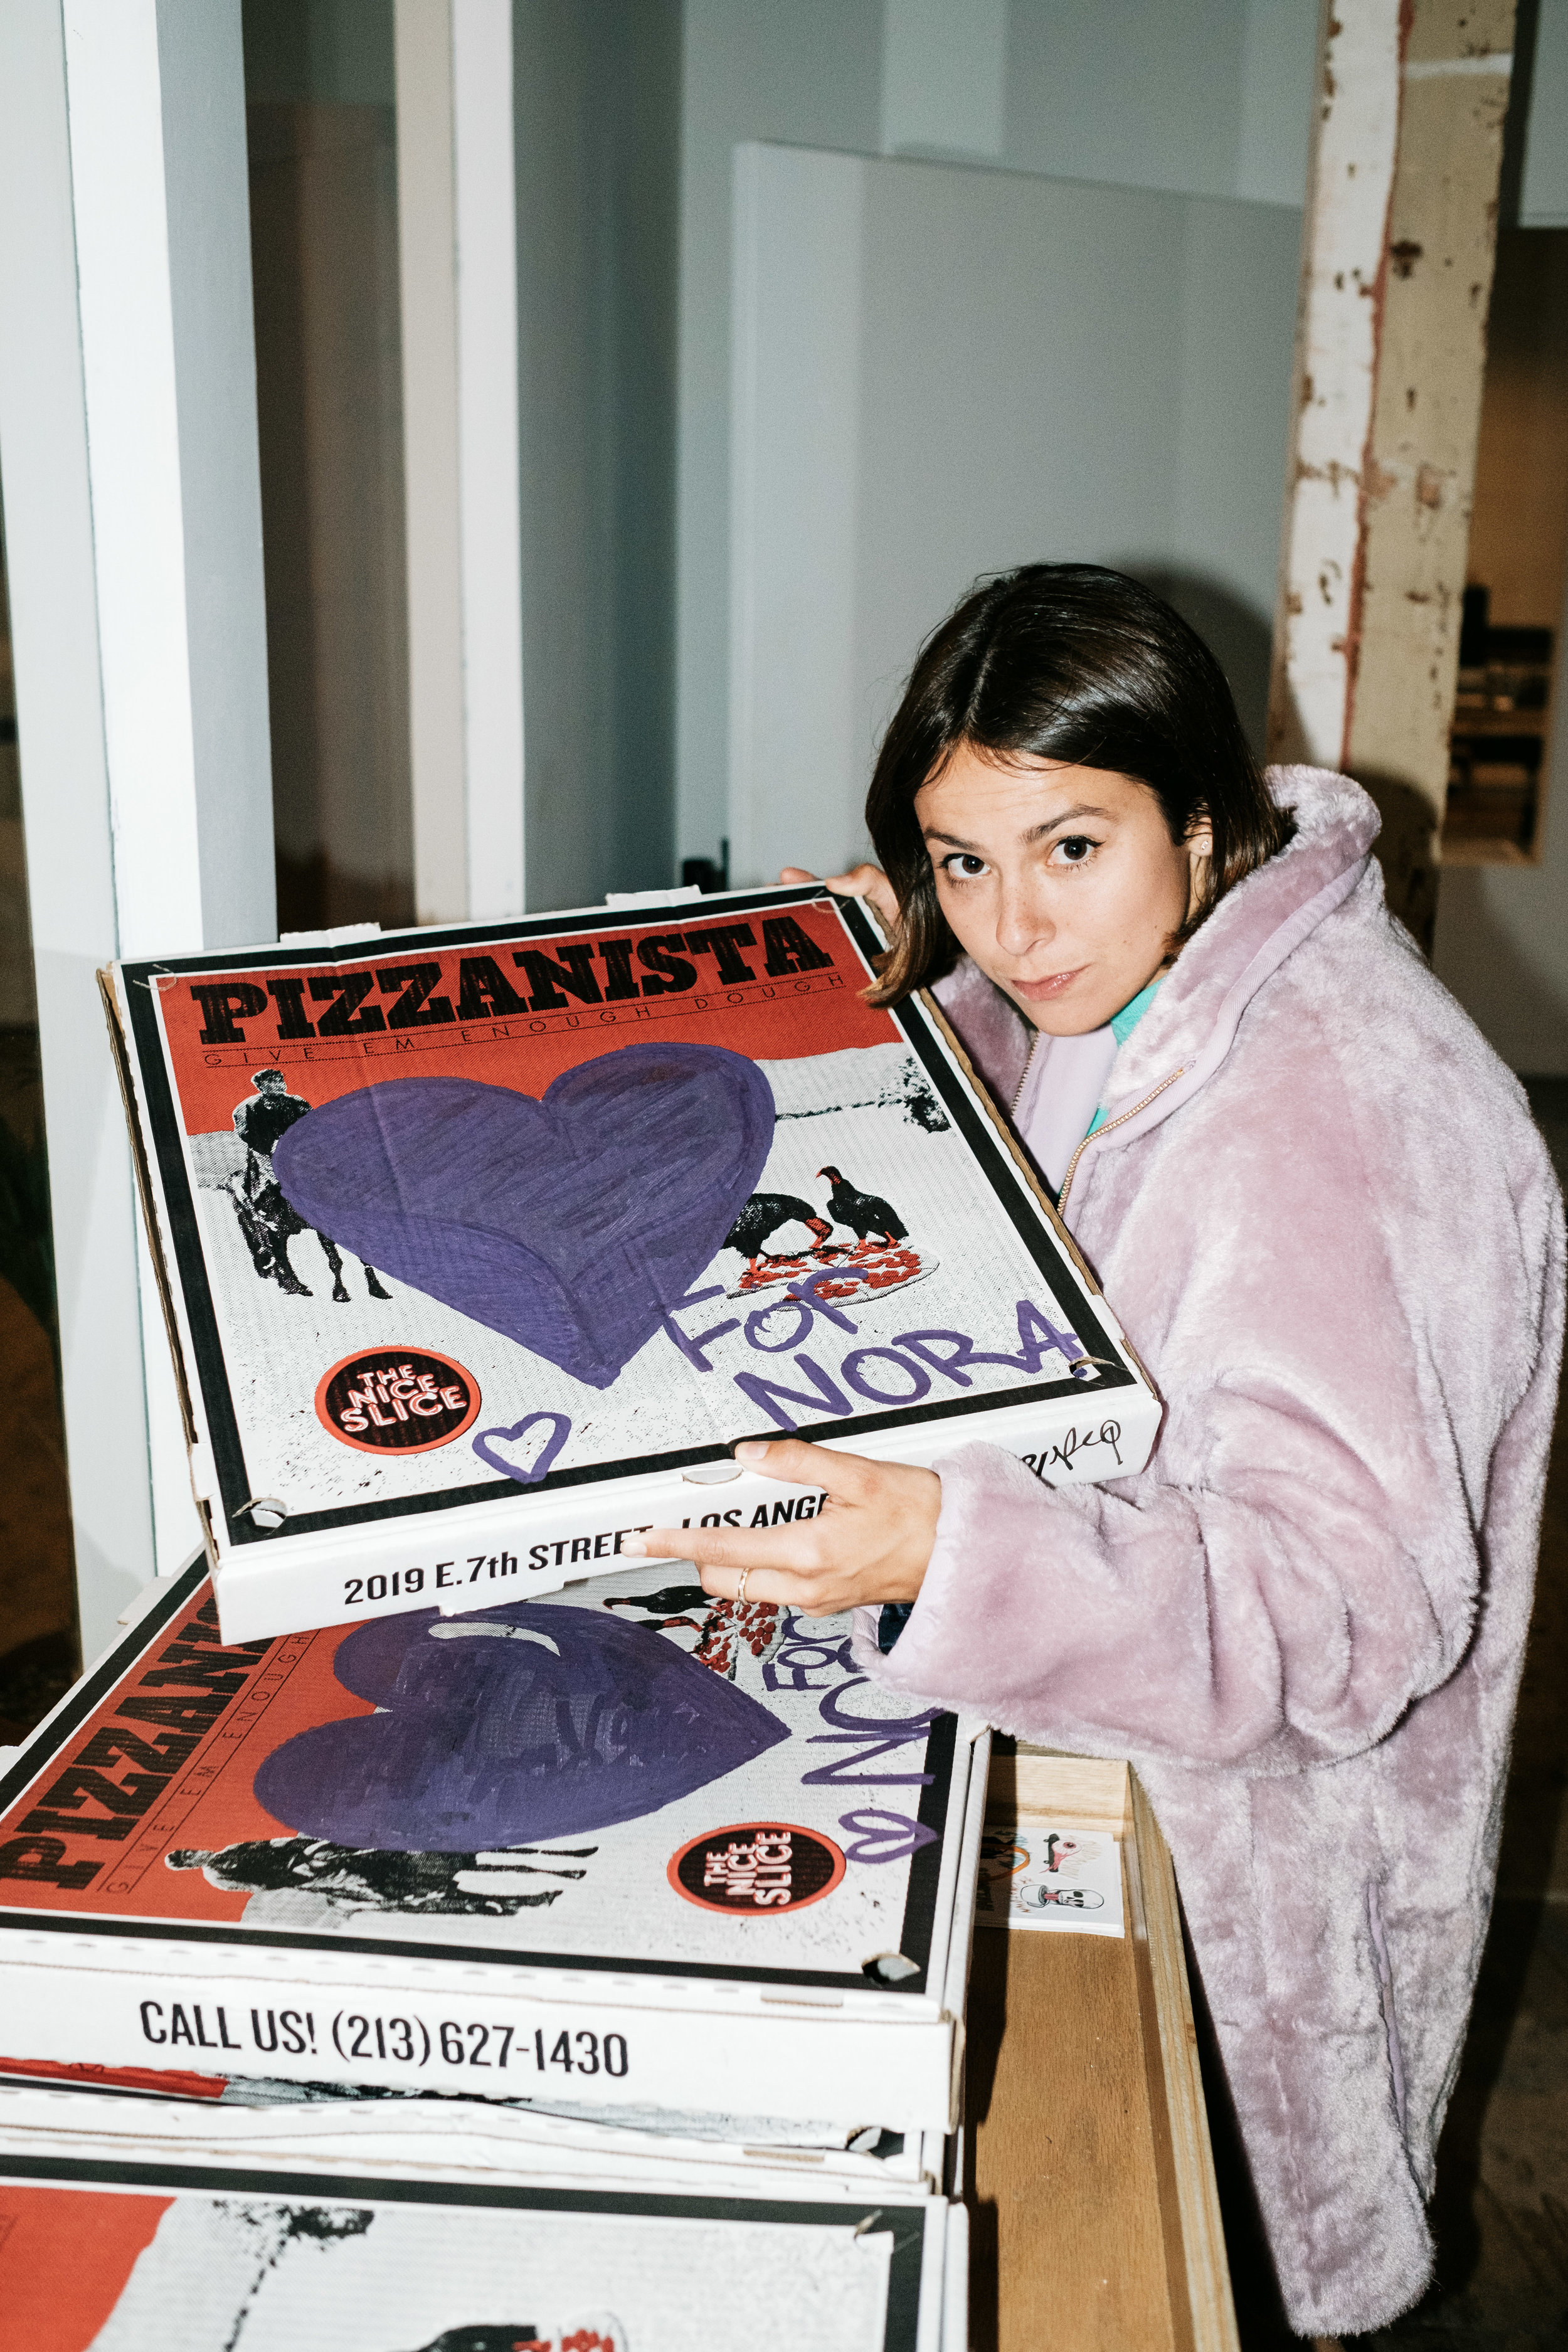 Nora and her customized pizza box.